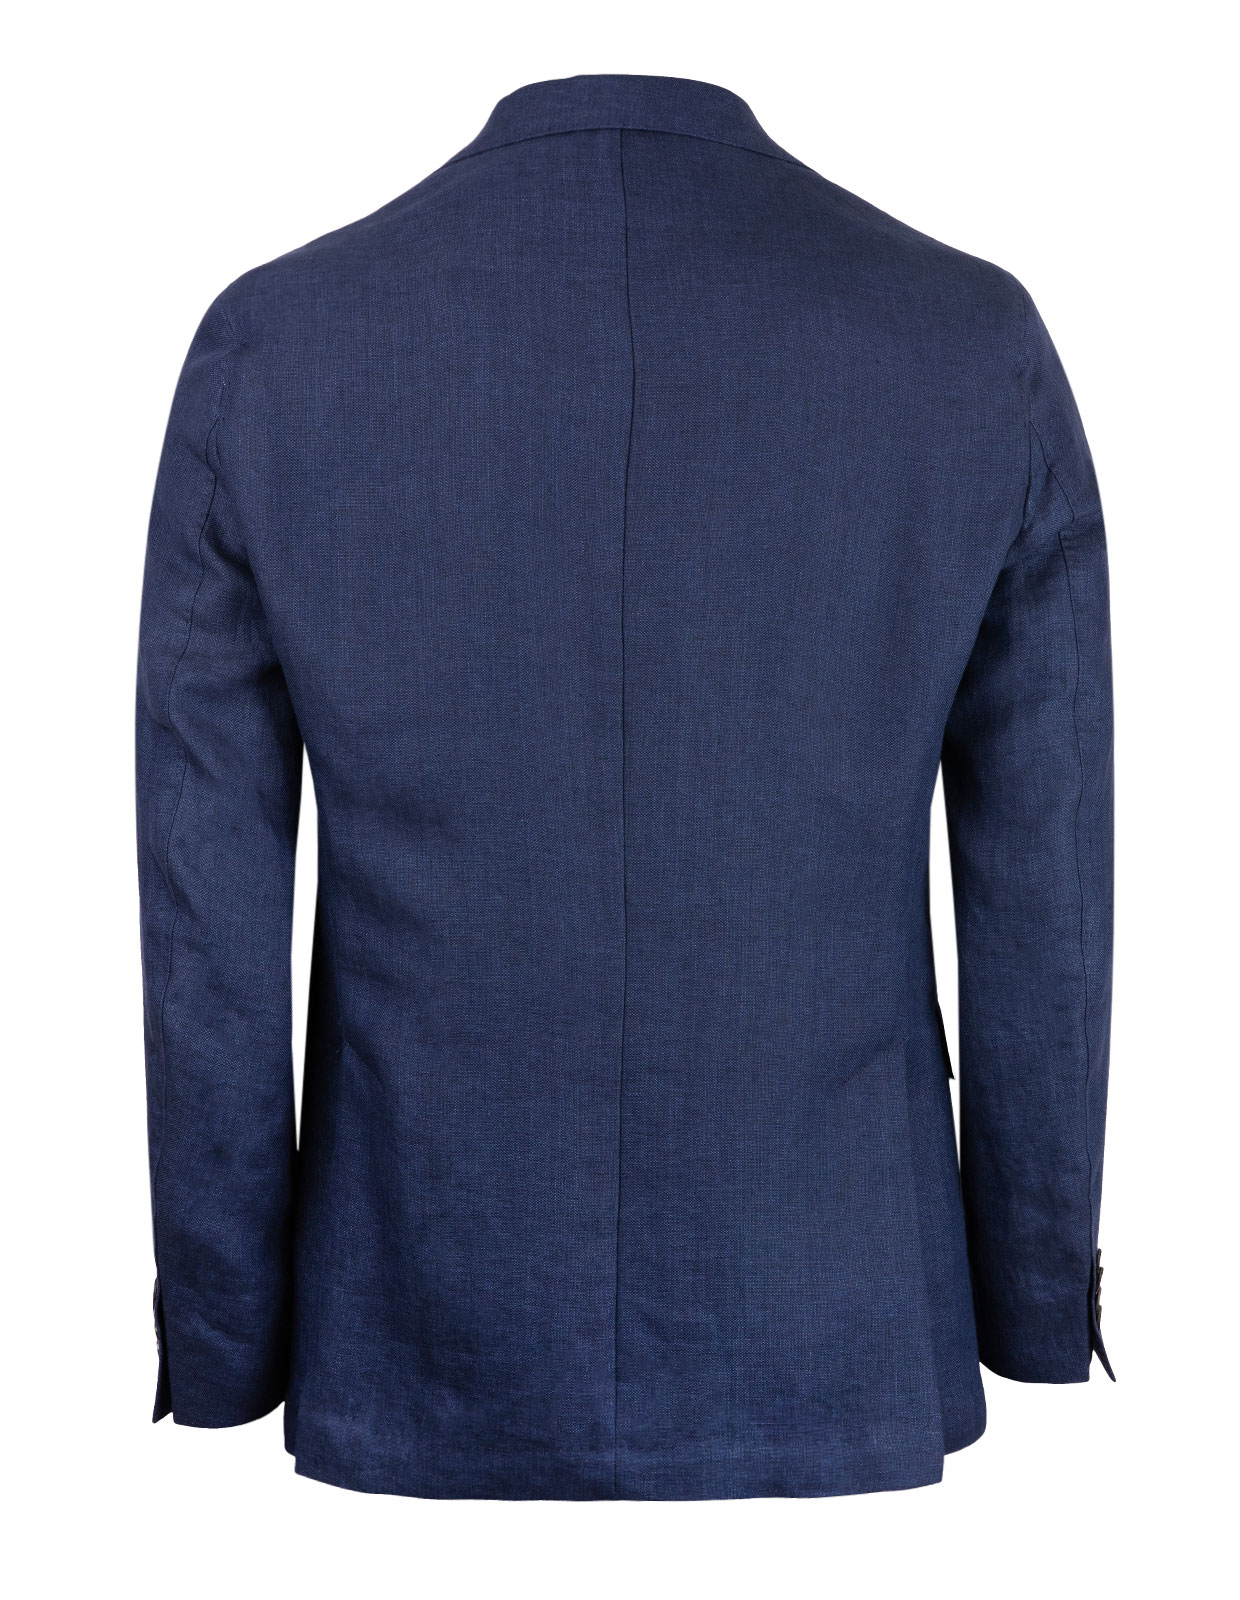 Ferry Regular Linen Jacket Mix & Match Navy